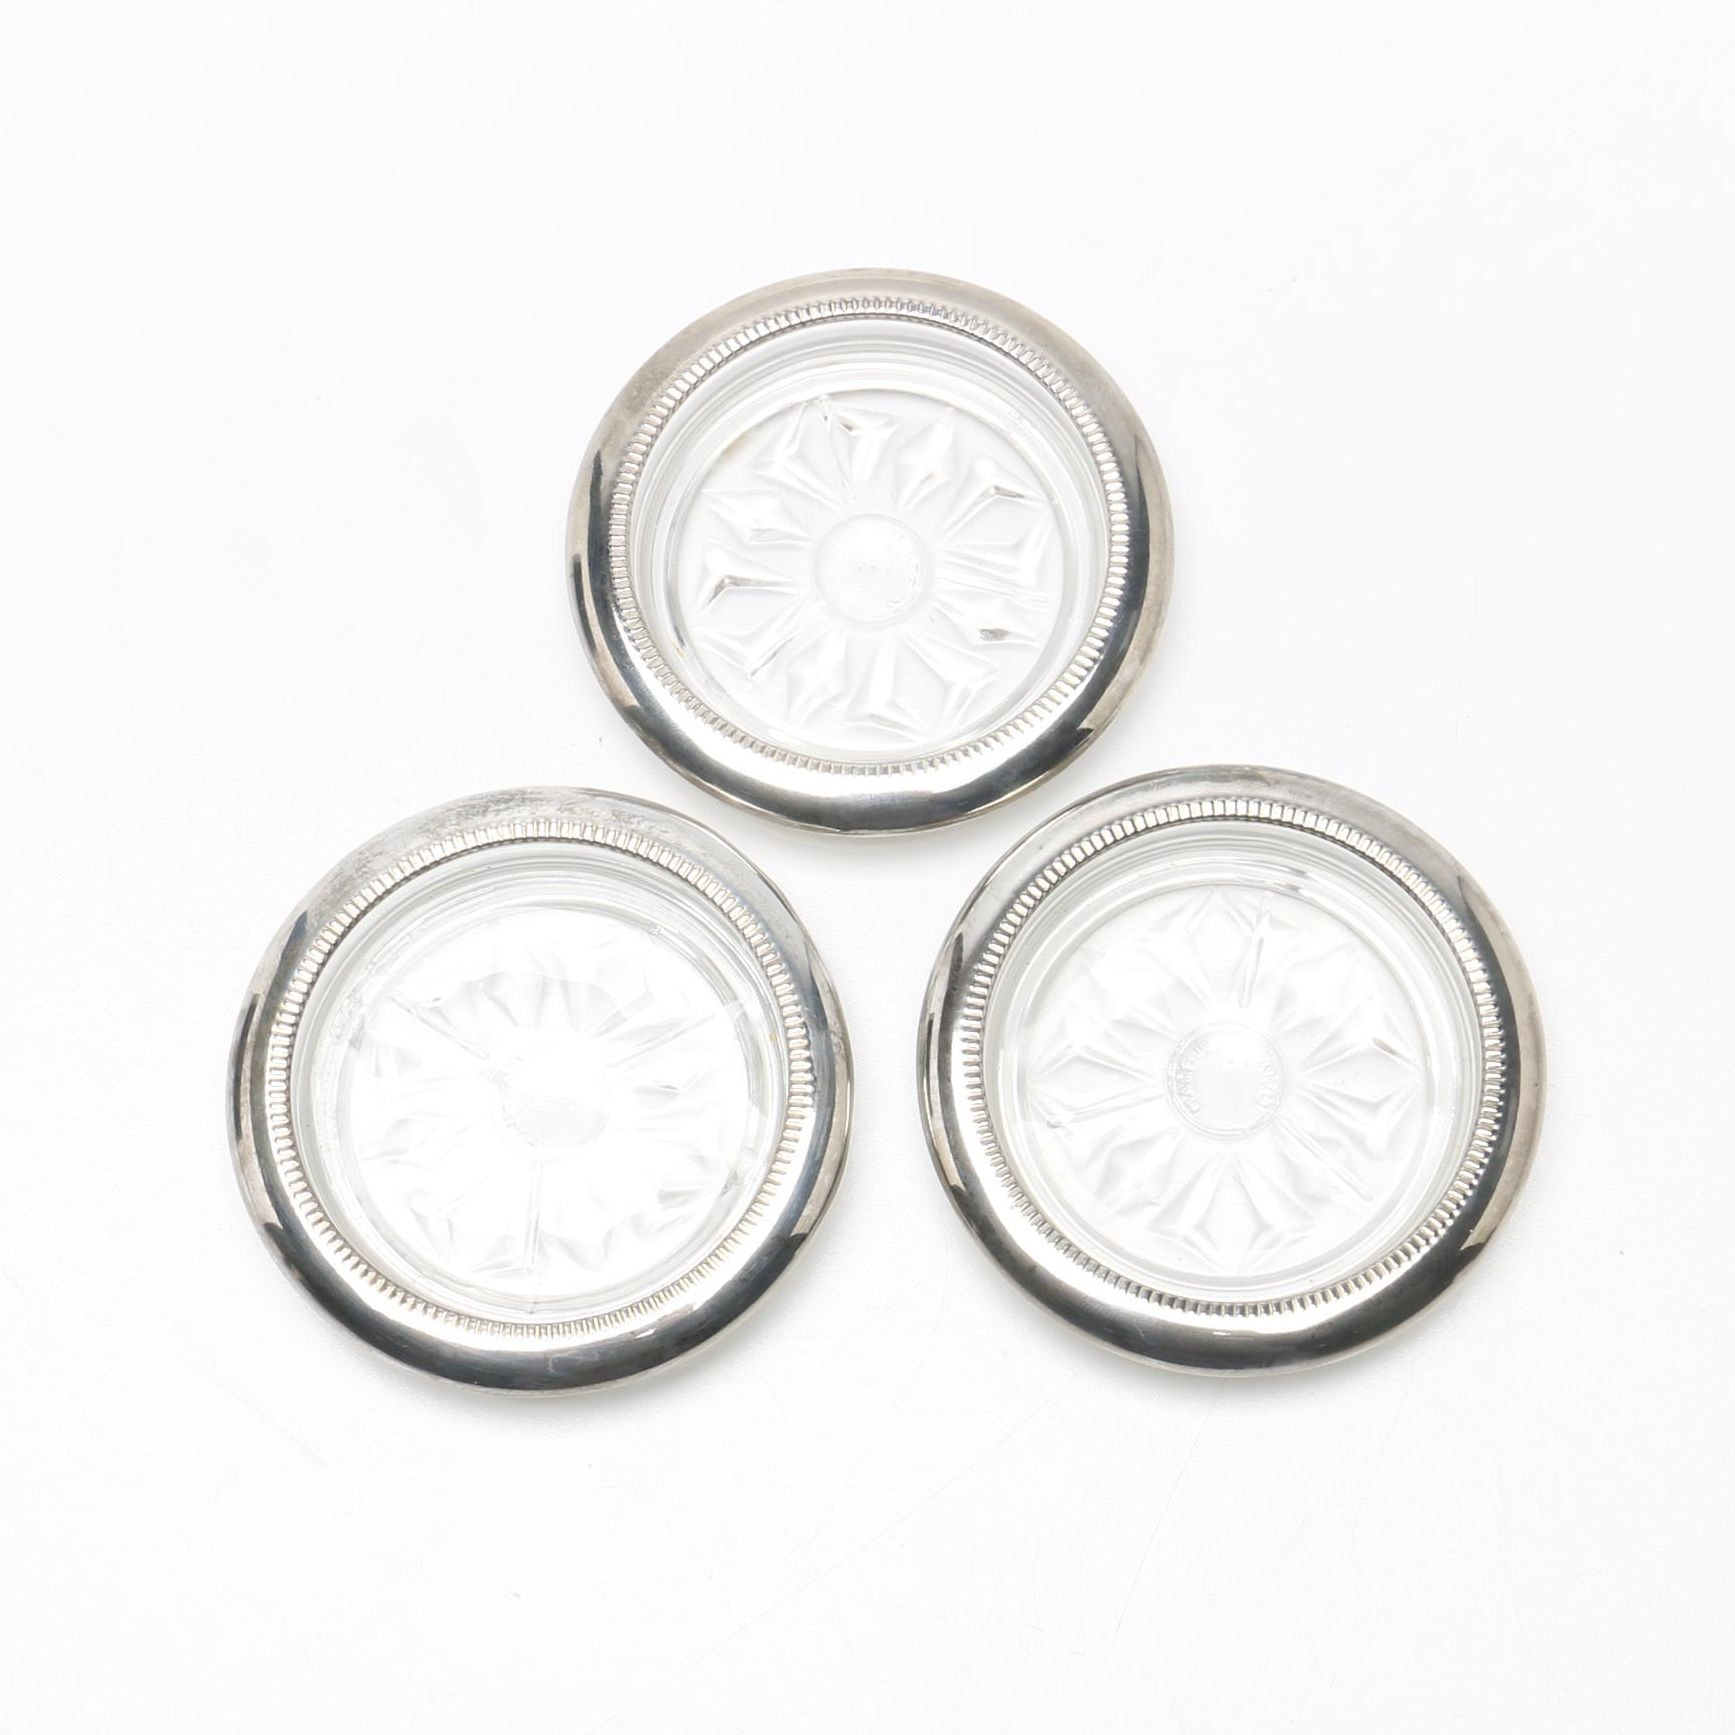 Glass Coasters With Silver Tone Rims